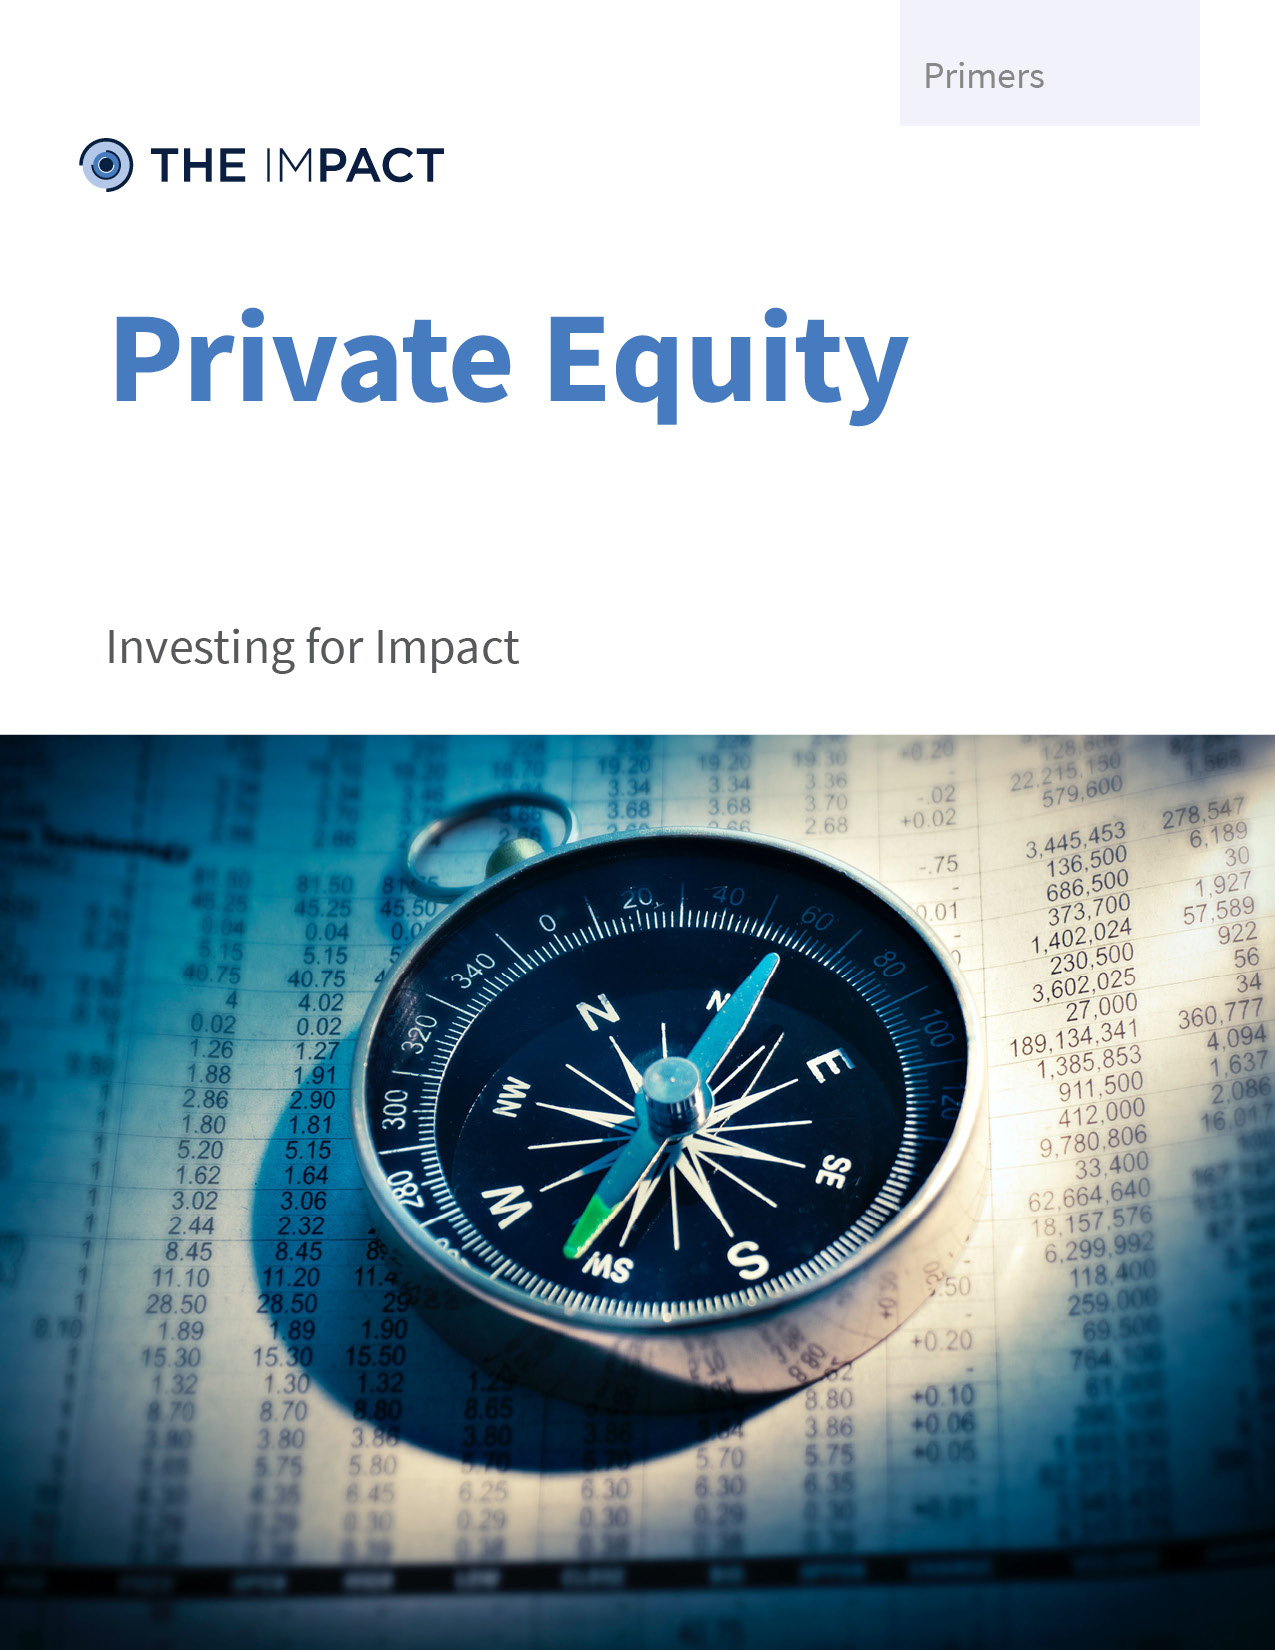 Private Equity. A primer by The ImPact.